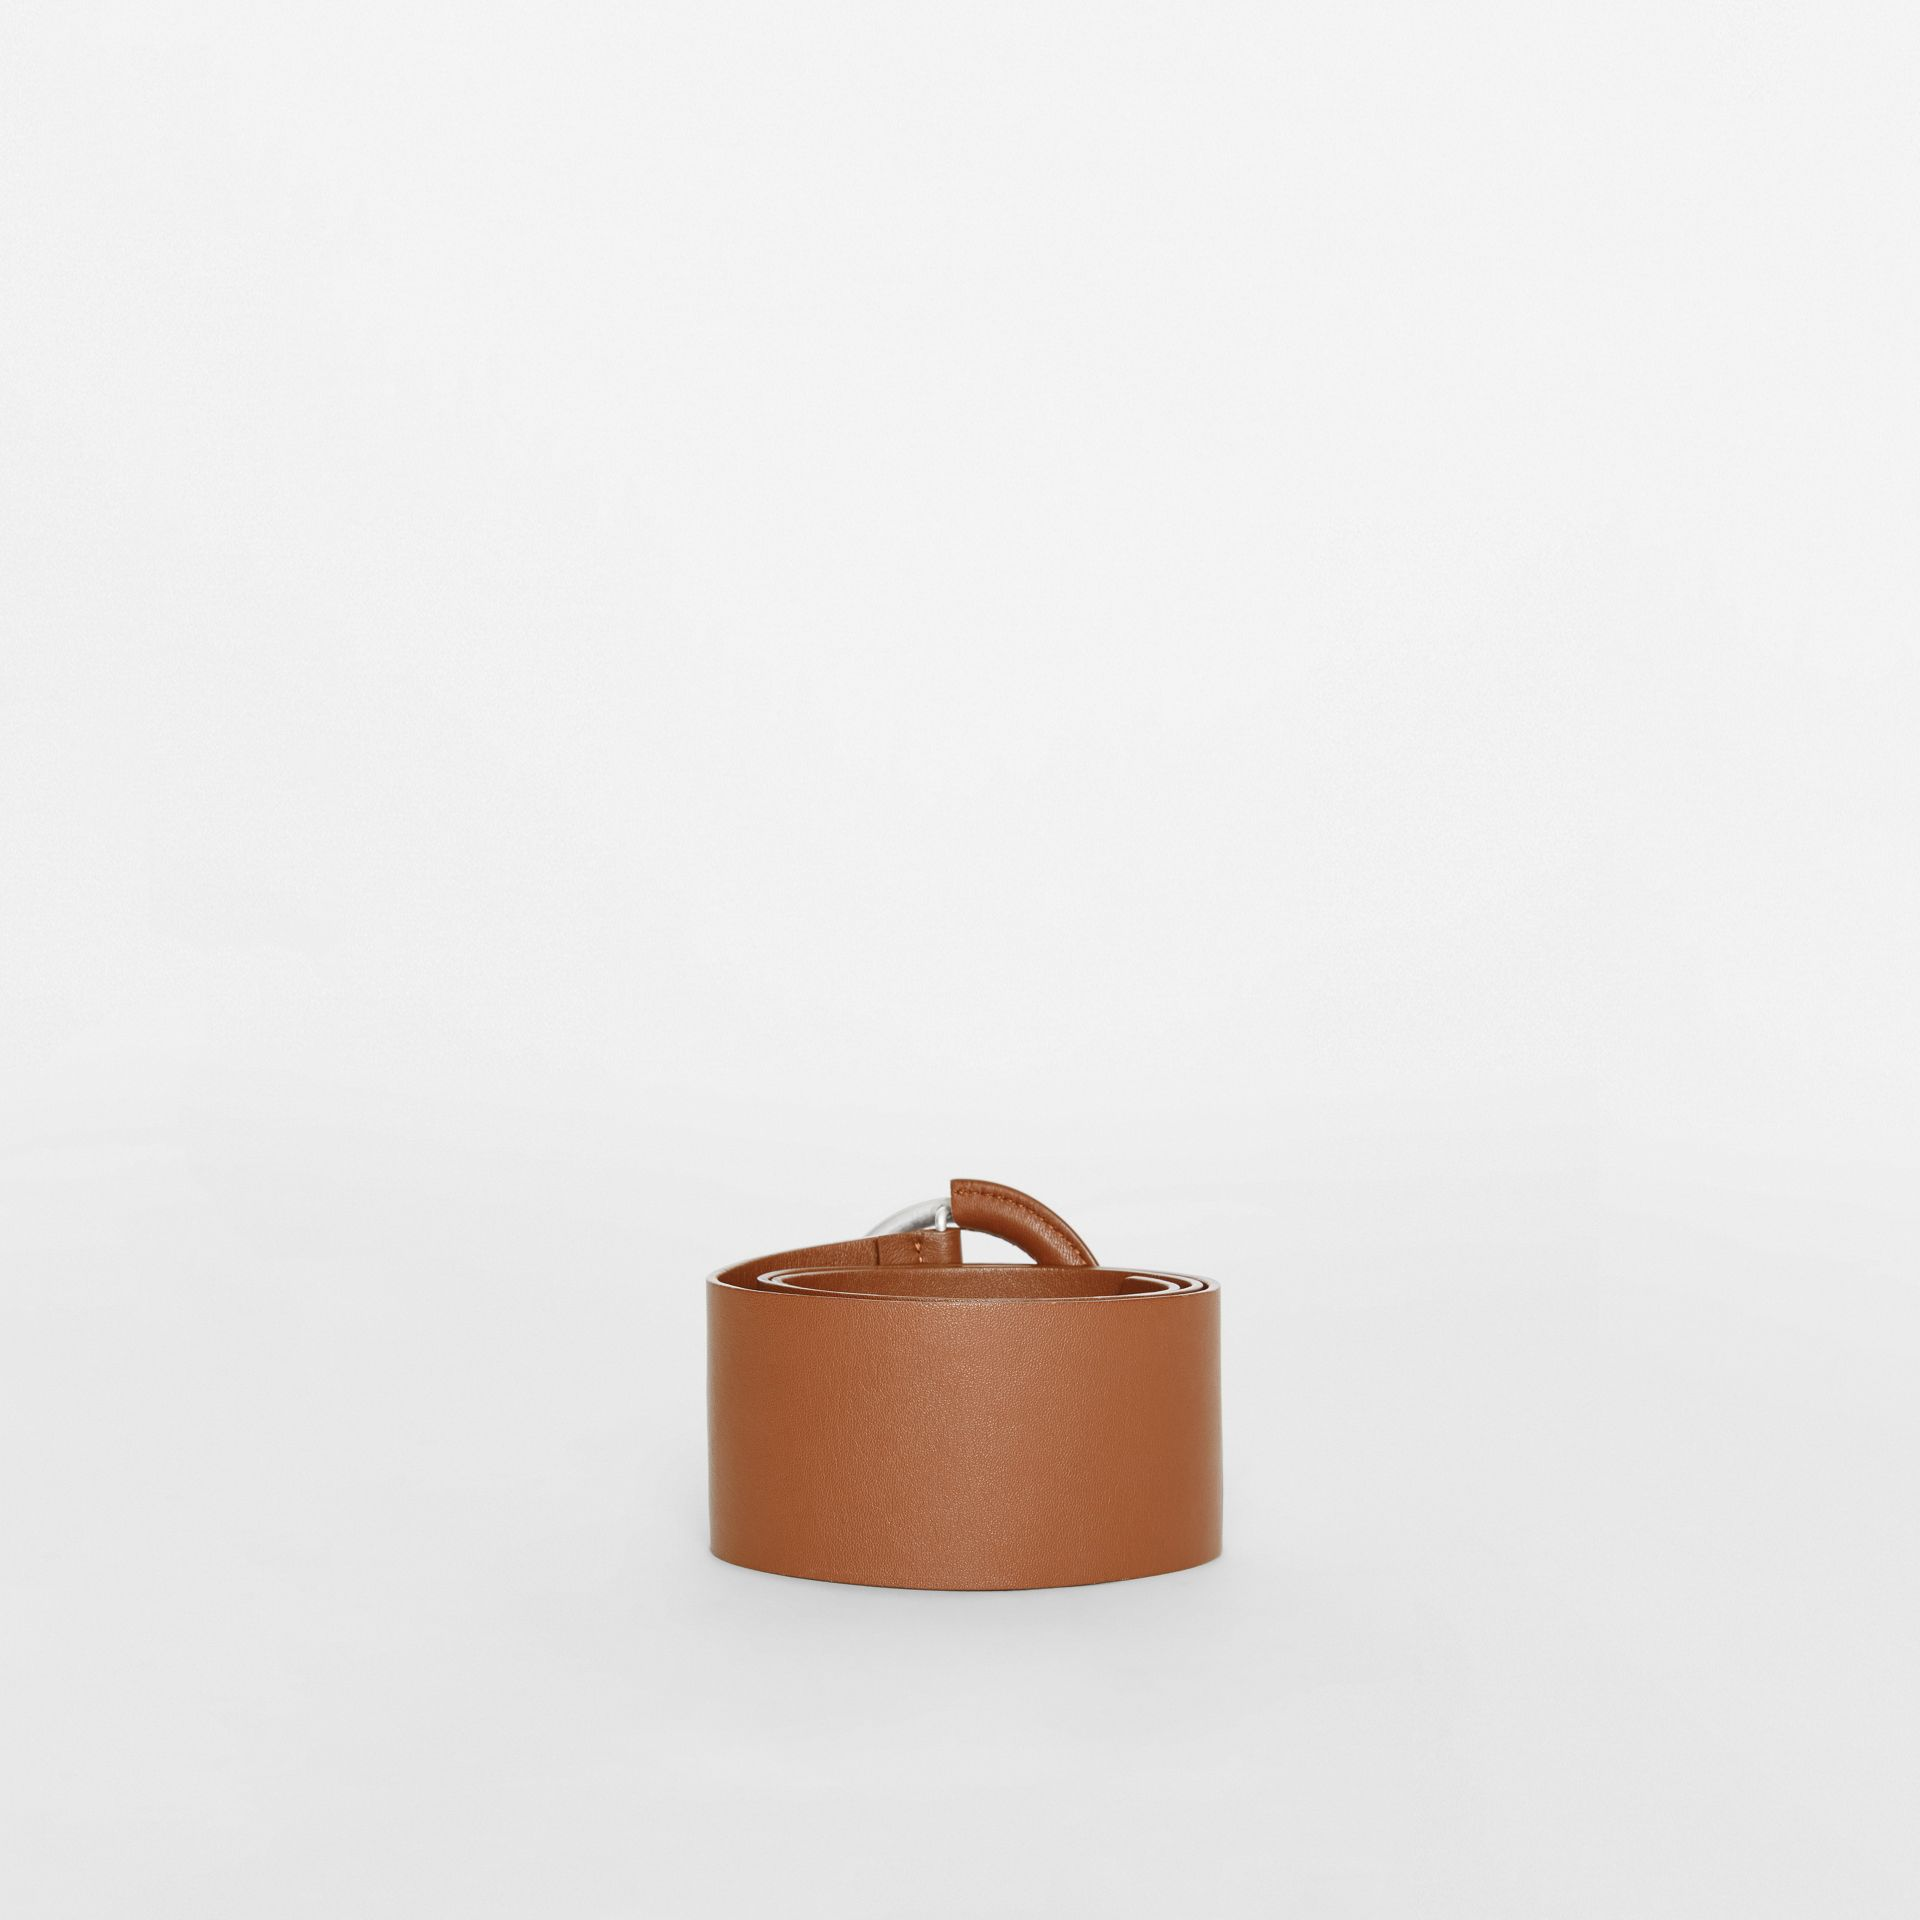 Round Buckle Leather Belt in Tan - Women | Burberry United Kingdom - gallery image 3